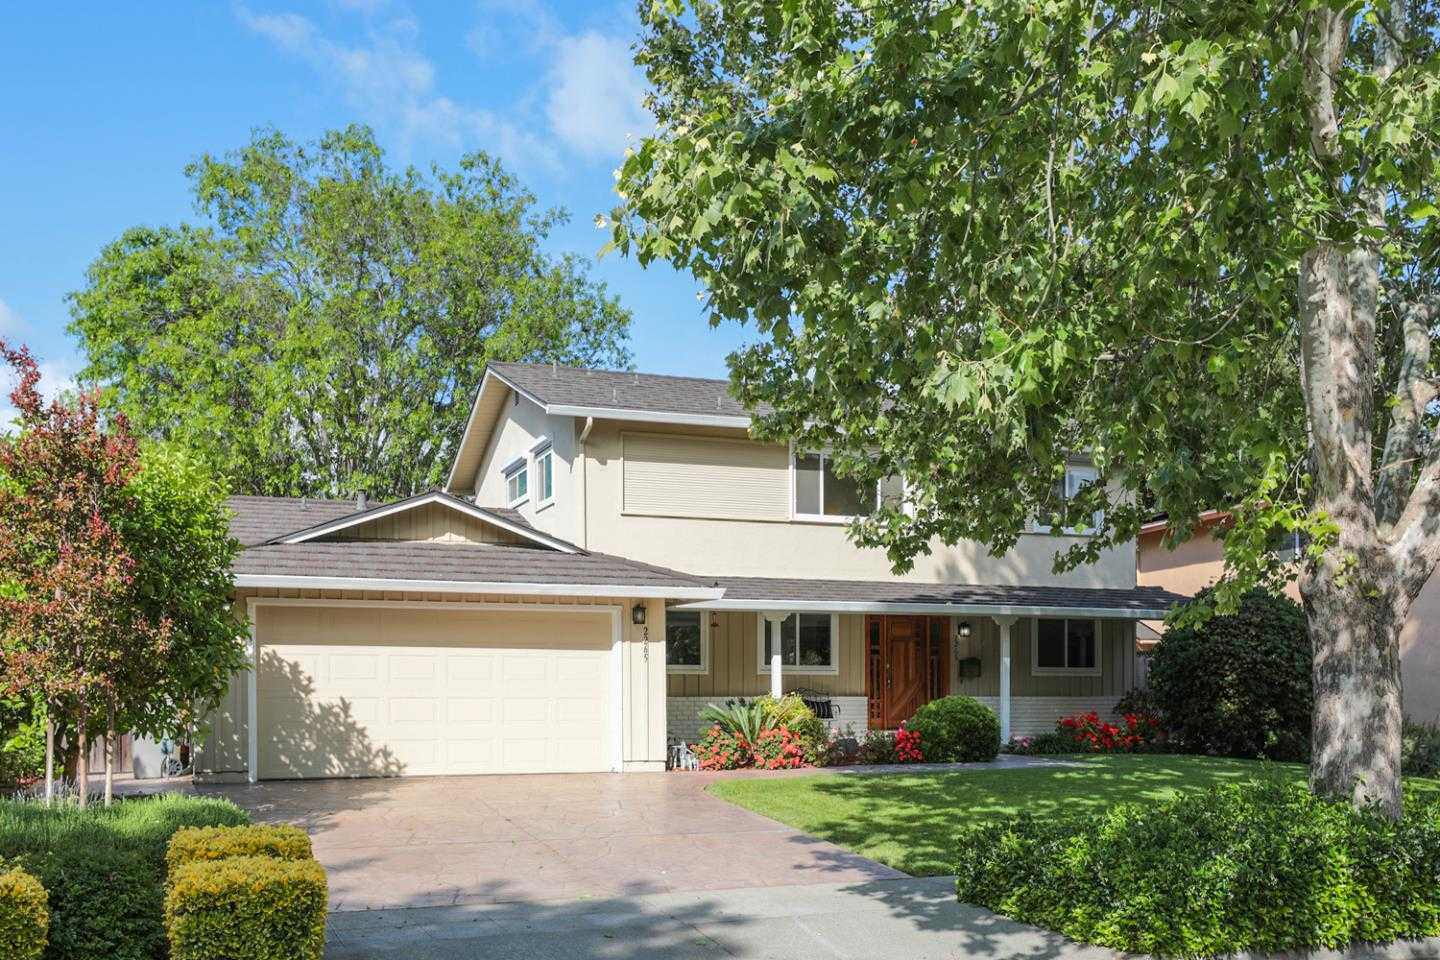 $1,749,000 - 5Br/3Ba -  for Sale in San Jose